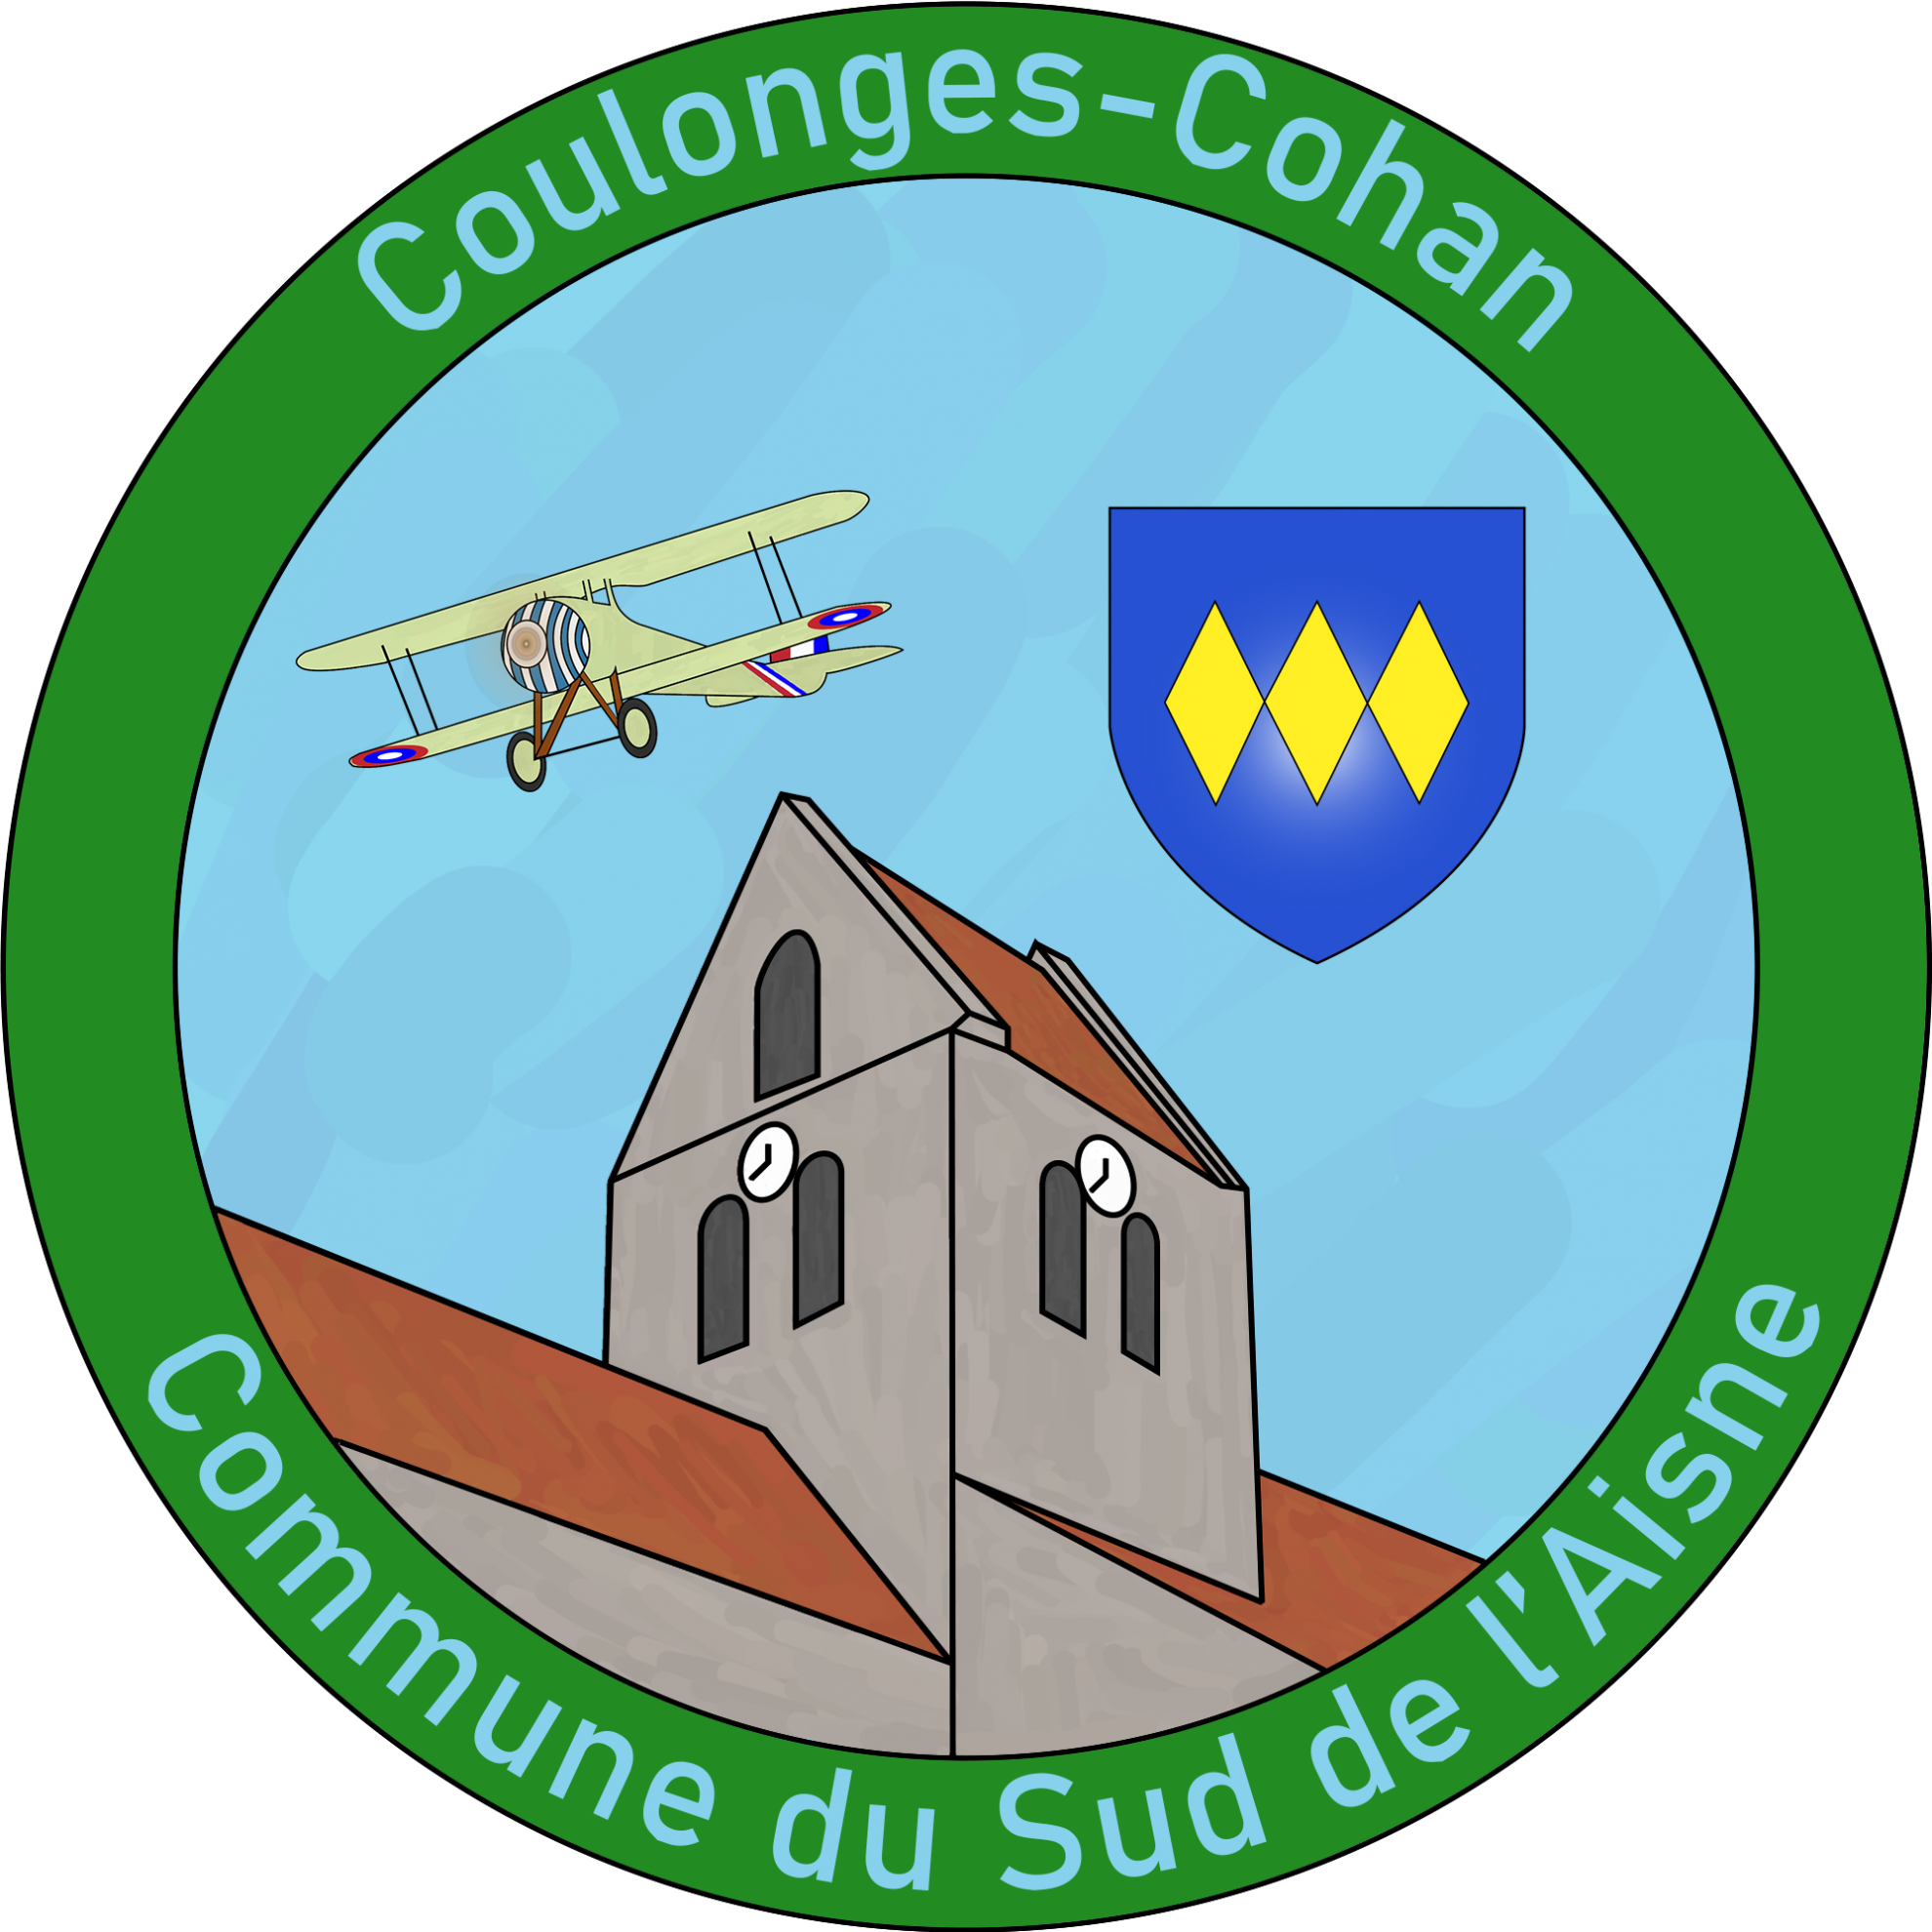 Logo de Coulonges